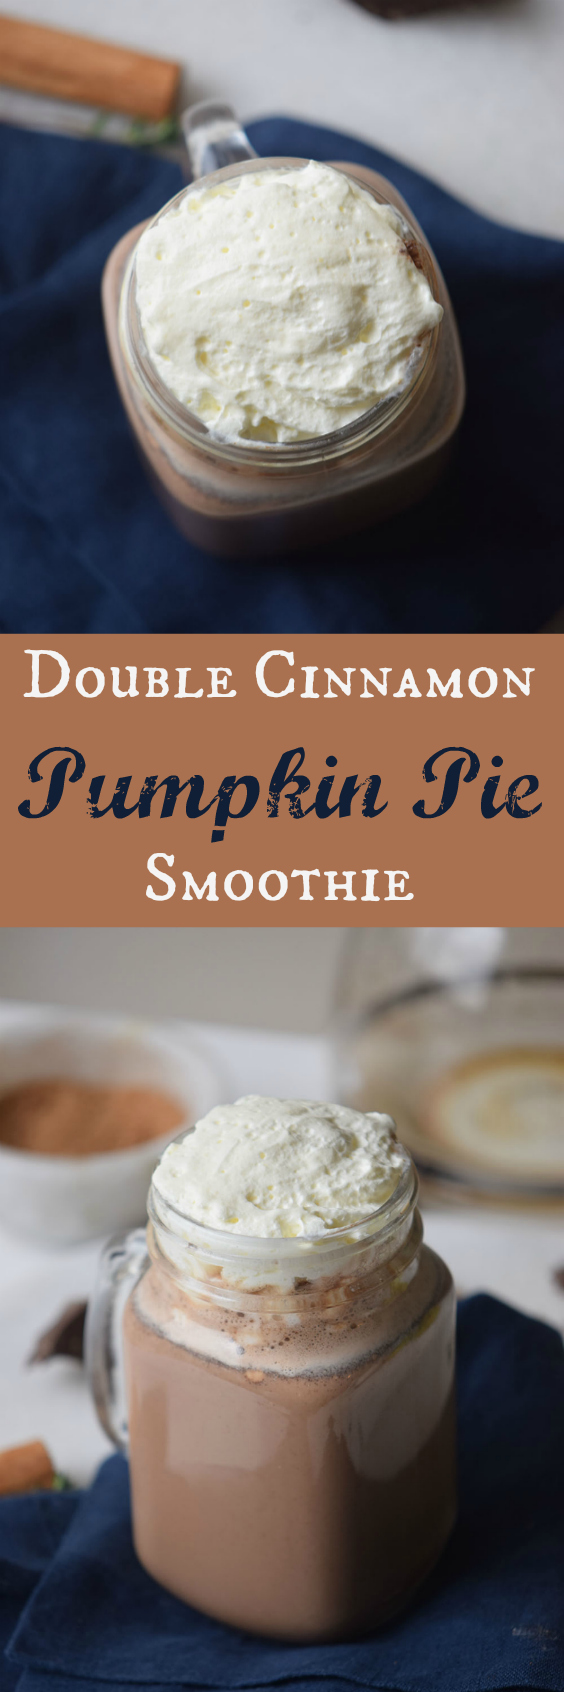 Whip up one of these delicious Double Cinnamon Pumpkin Pie Smoothie, it's an excellent to kickstart your day